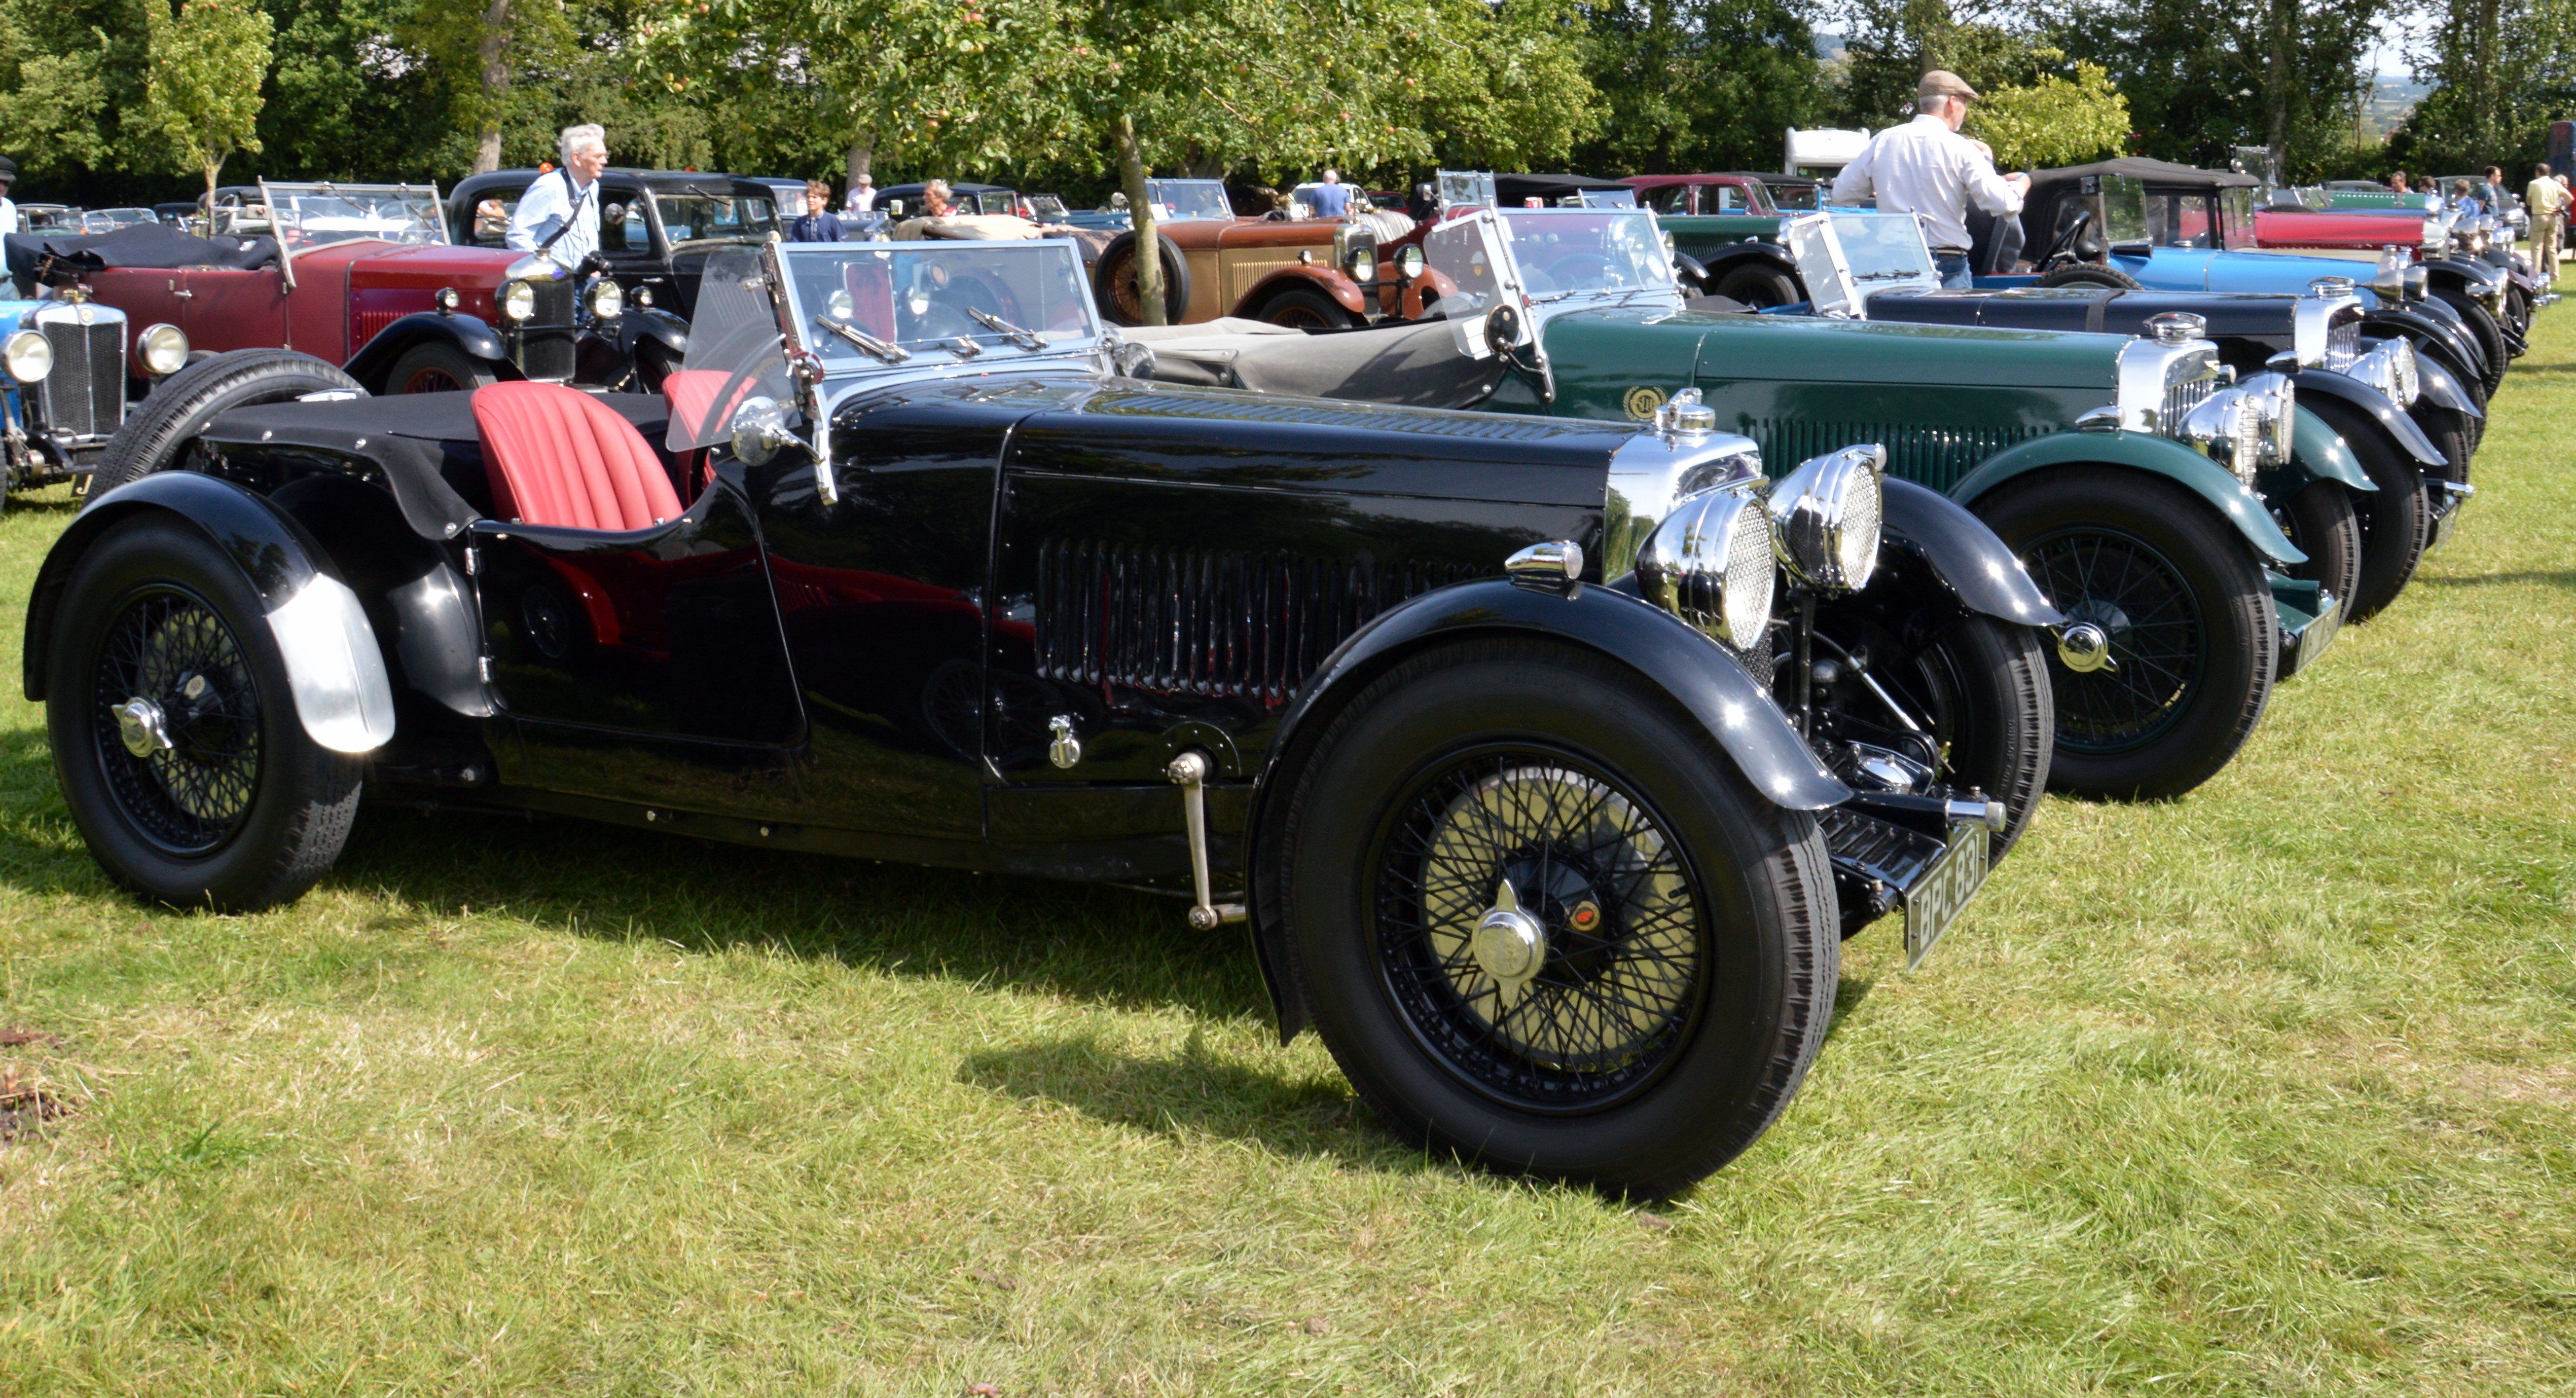 FileVintage Sports Cars Jpg Wikimedia Commons - Current sports cars